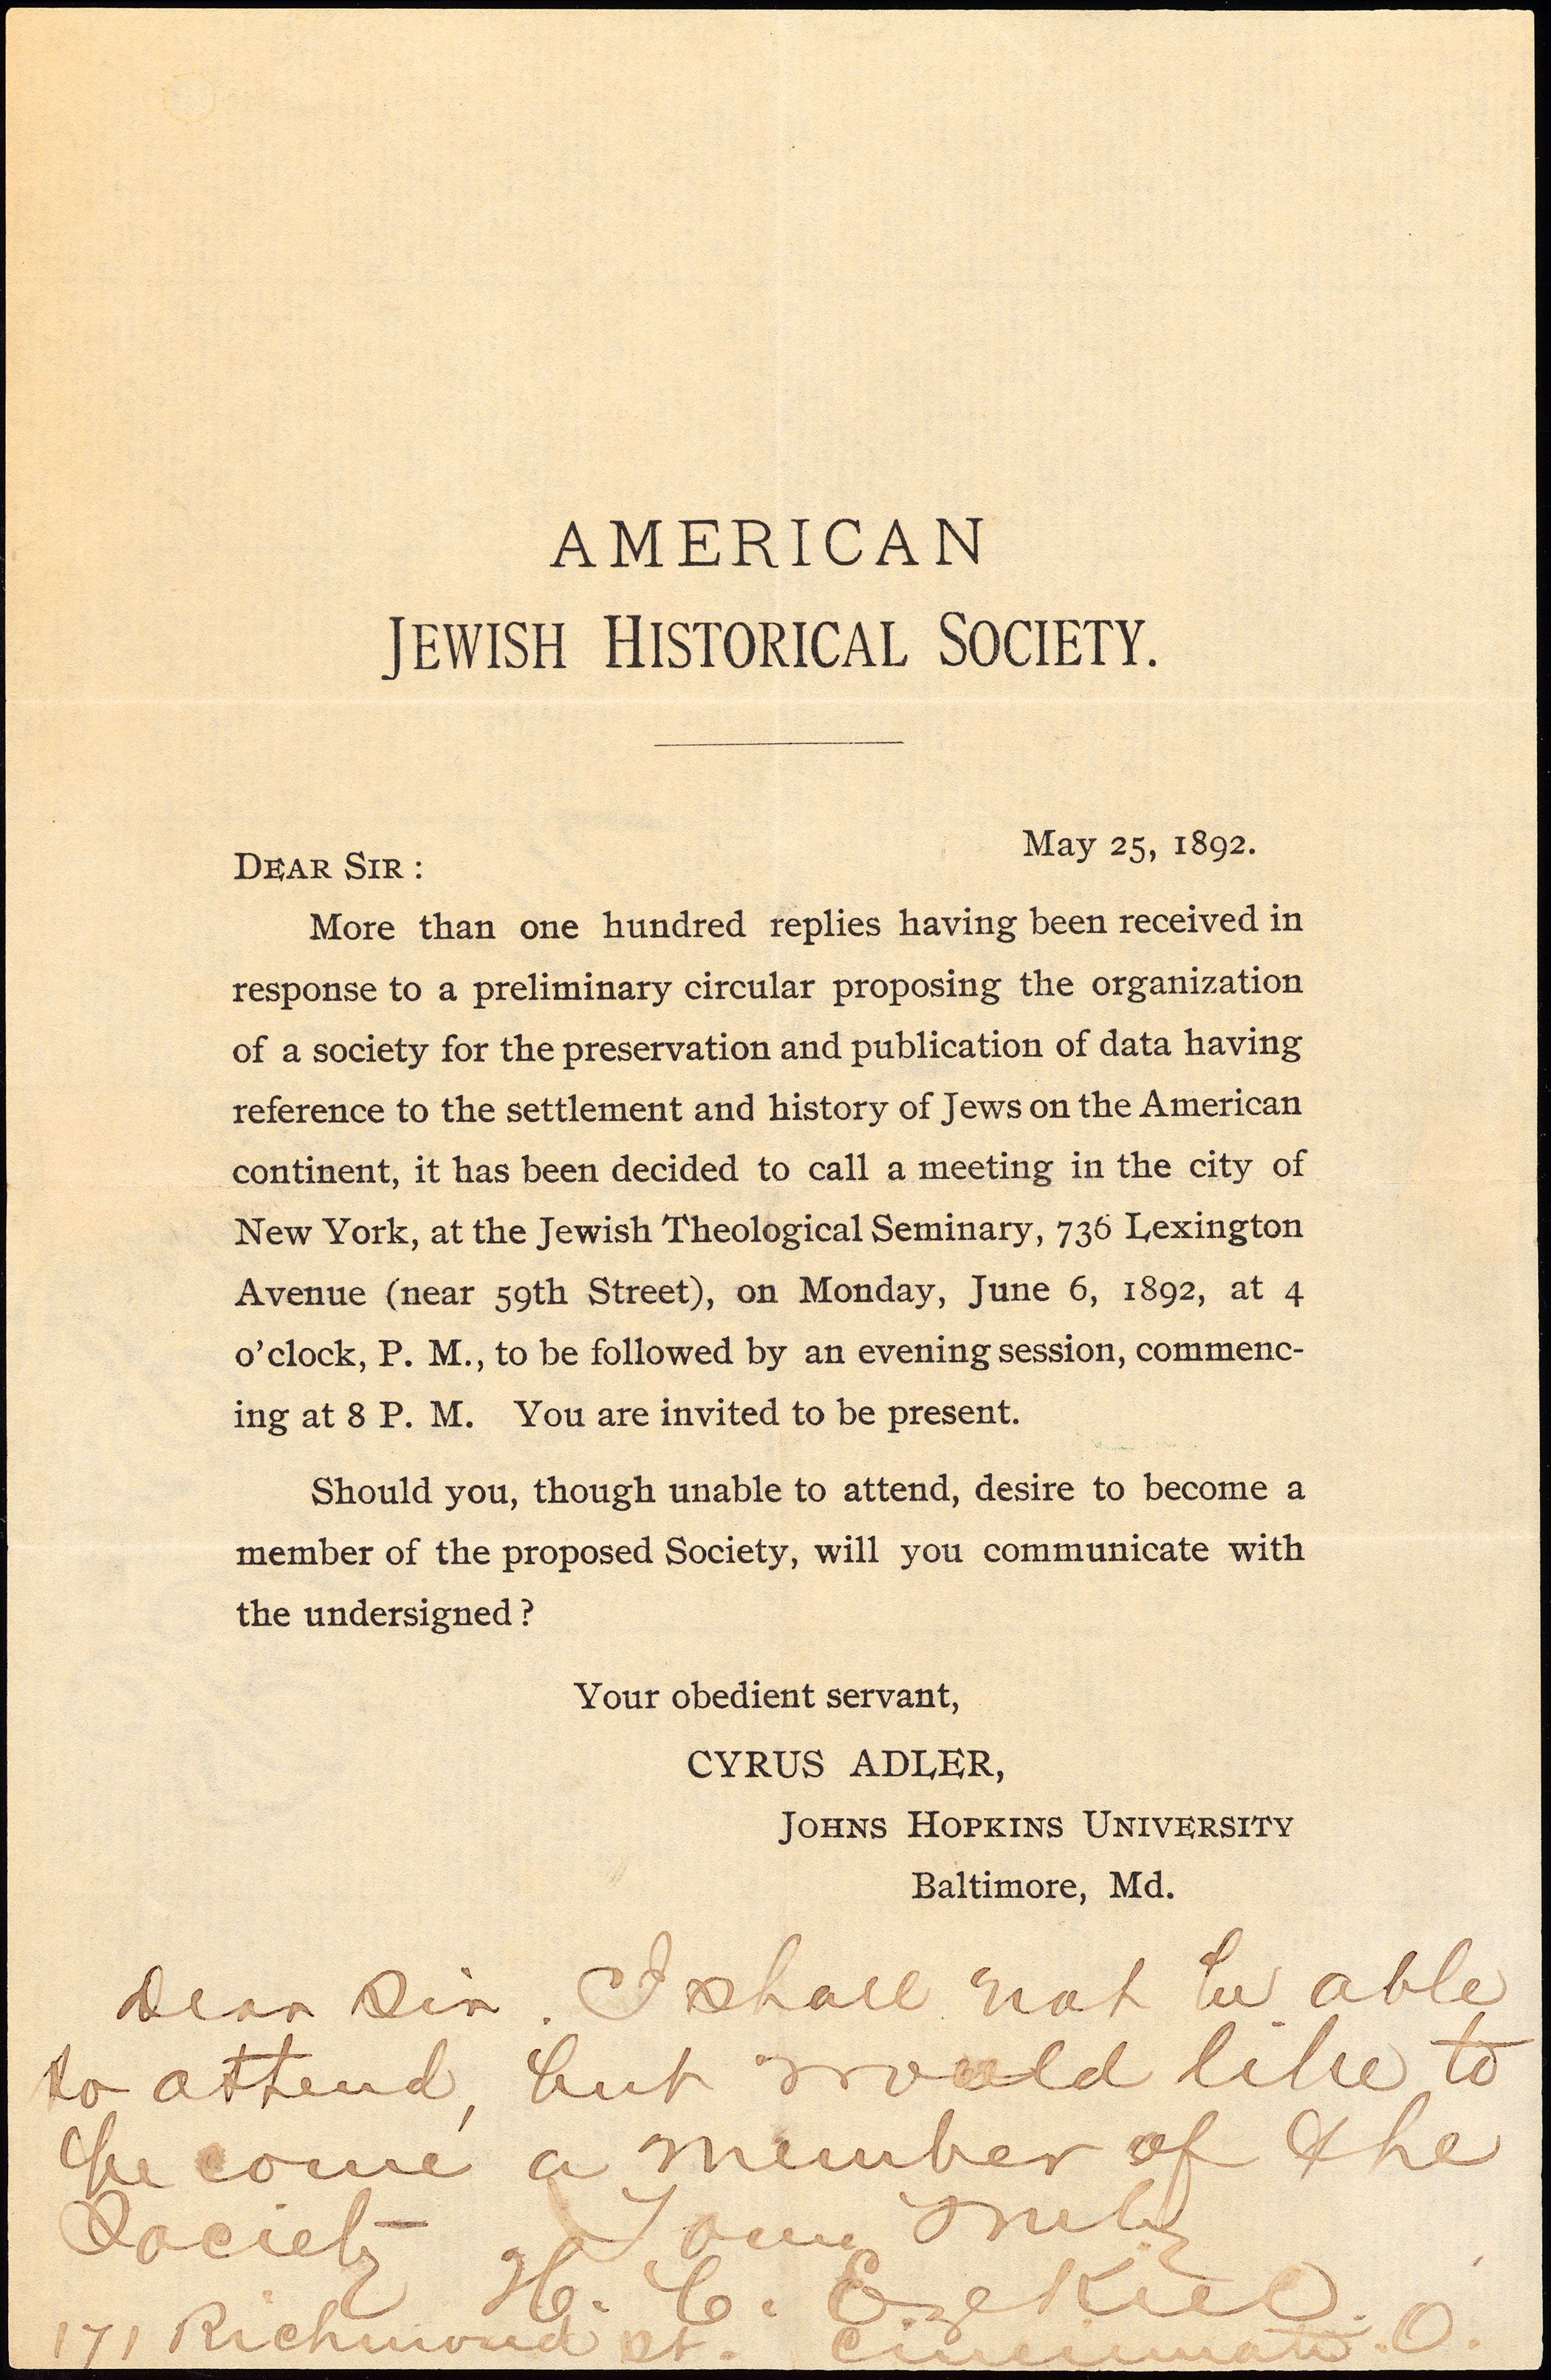 American Jewish Historical Society original 'call to meeting', May 25, 1892.